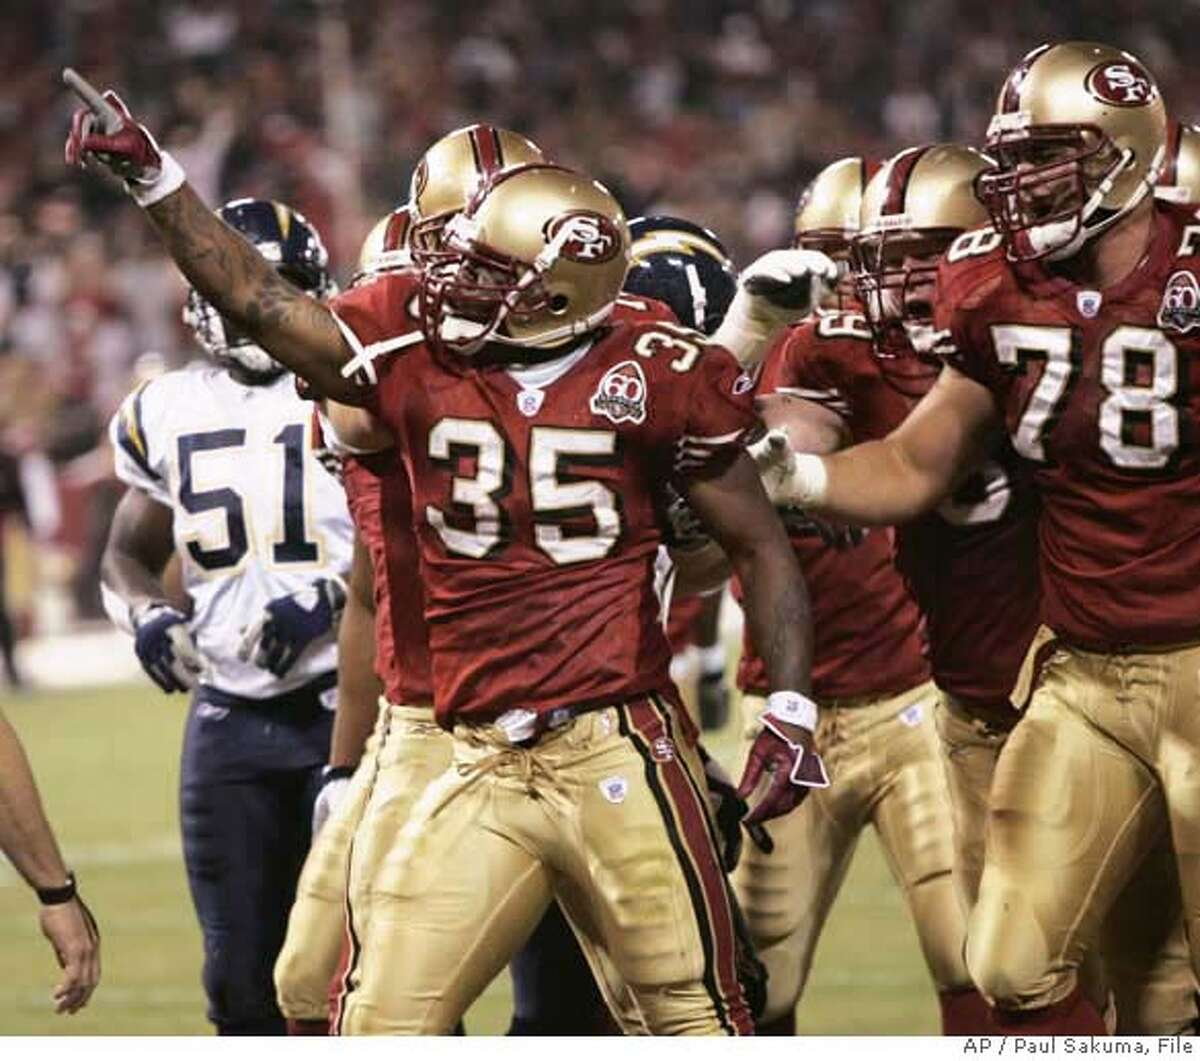 San Francisco 49ers running back Michael Robinson (35) celebrates after scoring against the San Diego Chargers in the second quarter of an NFL preseason football game in San Francisco, Friday, Sept. 1, 2006. (AP Photo/Paul Sakuma) EFE OUT